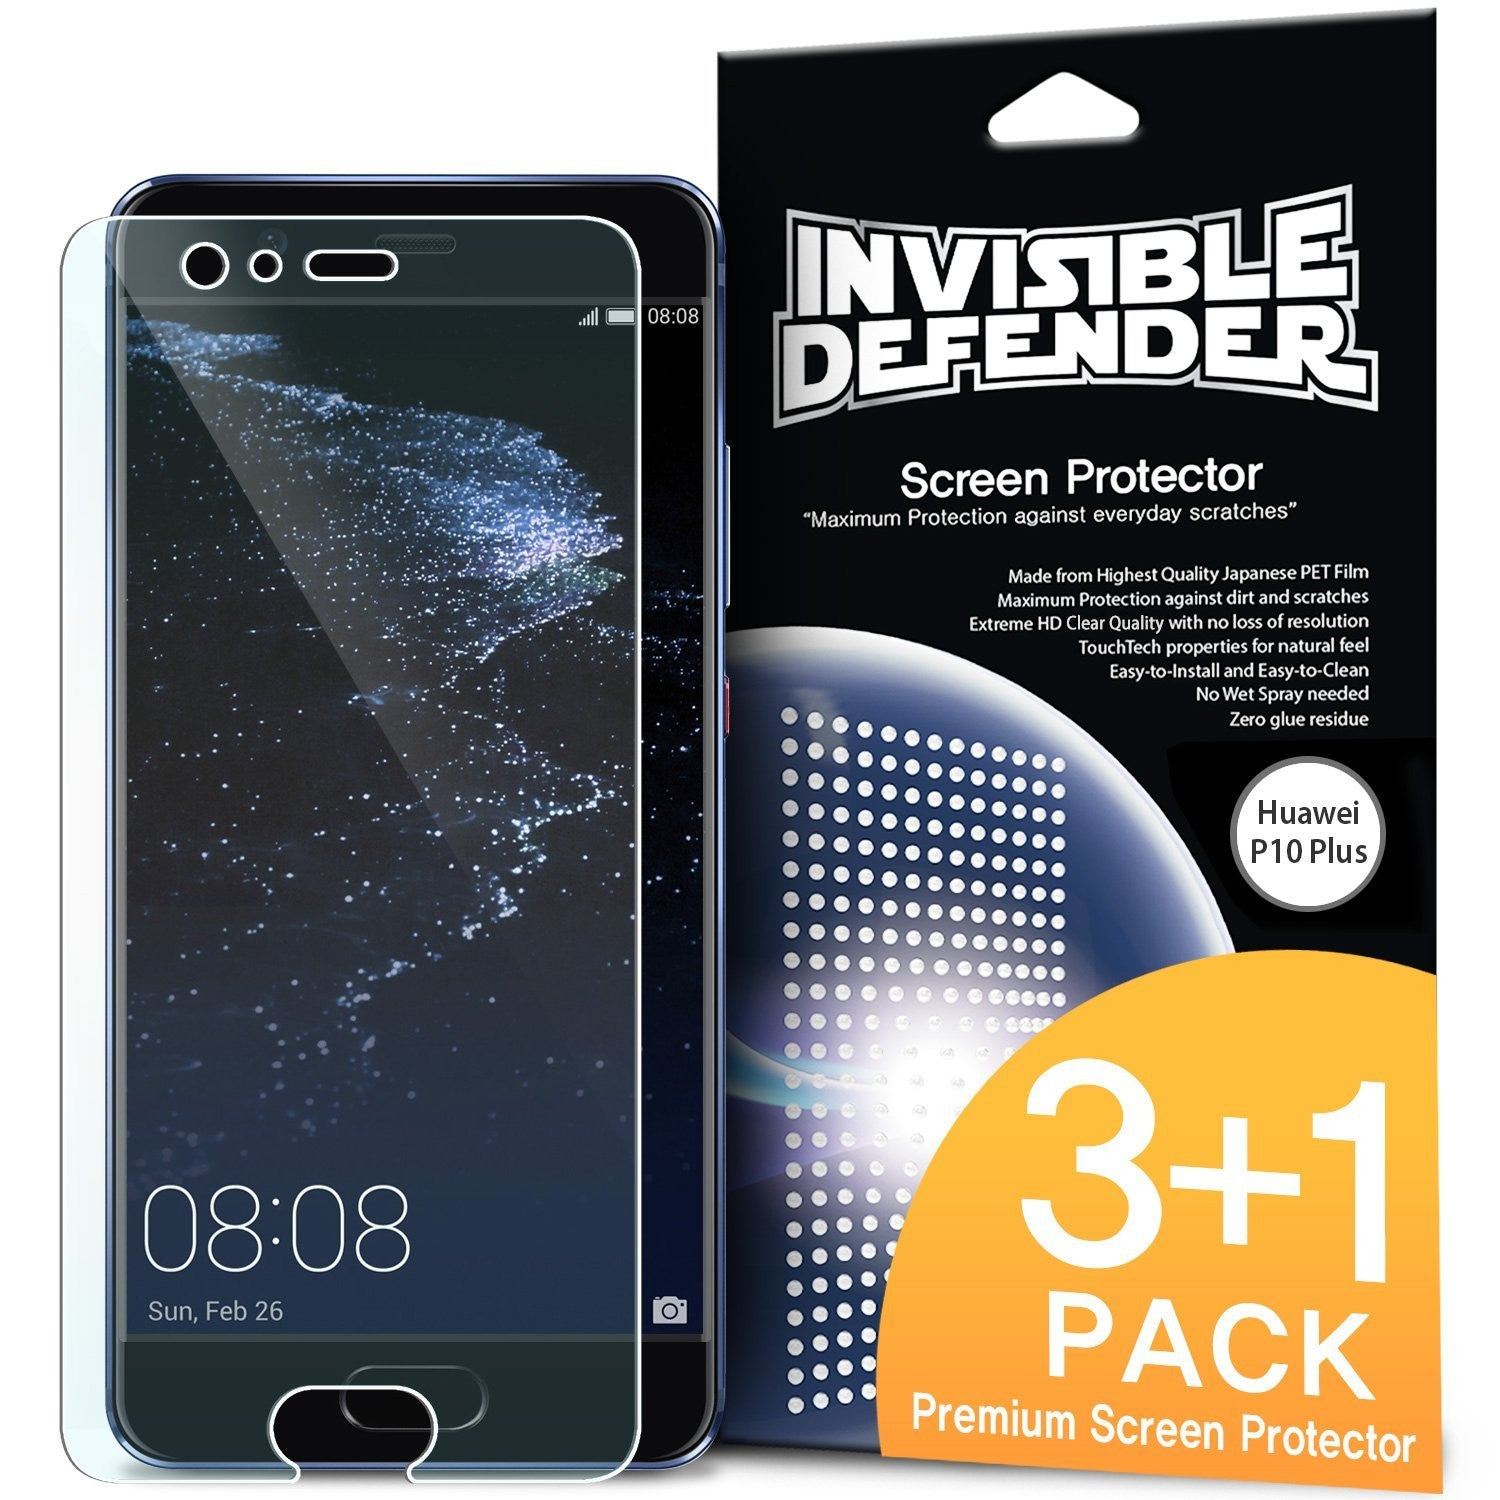 huawei p10 plus ringke invisible defender 4 pack hd clearness screen protector